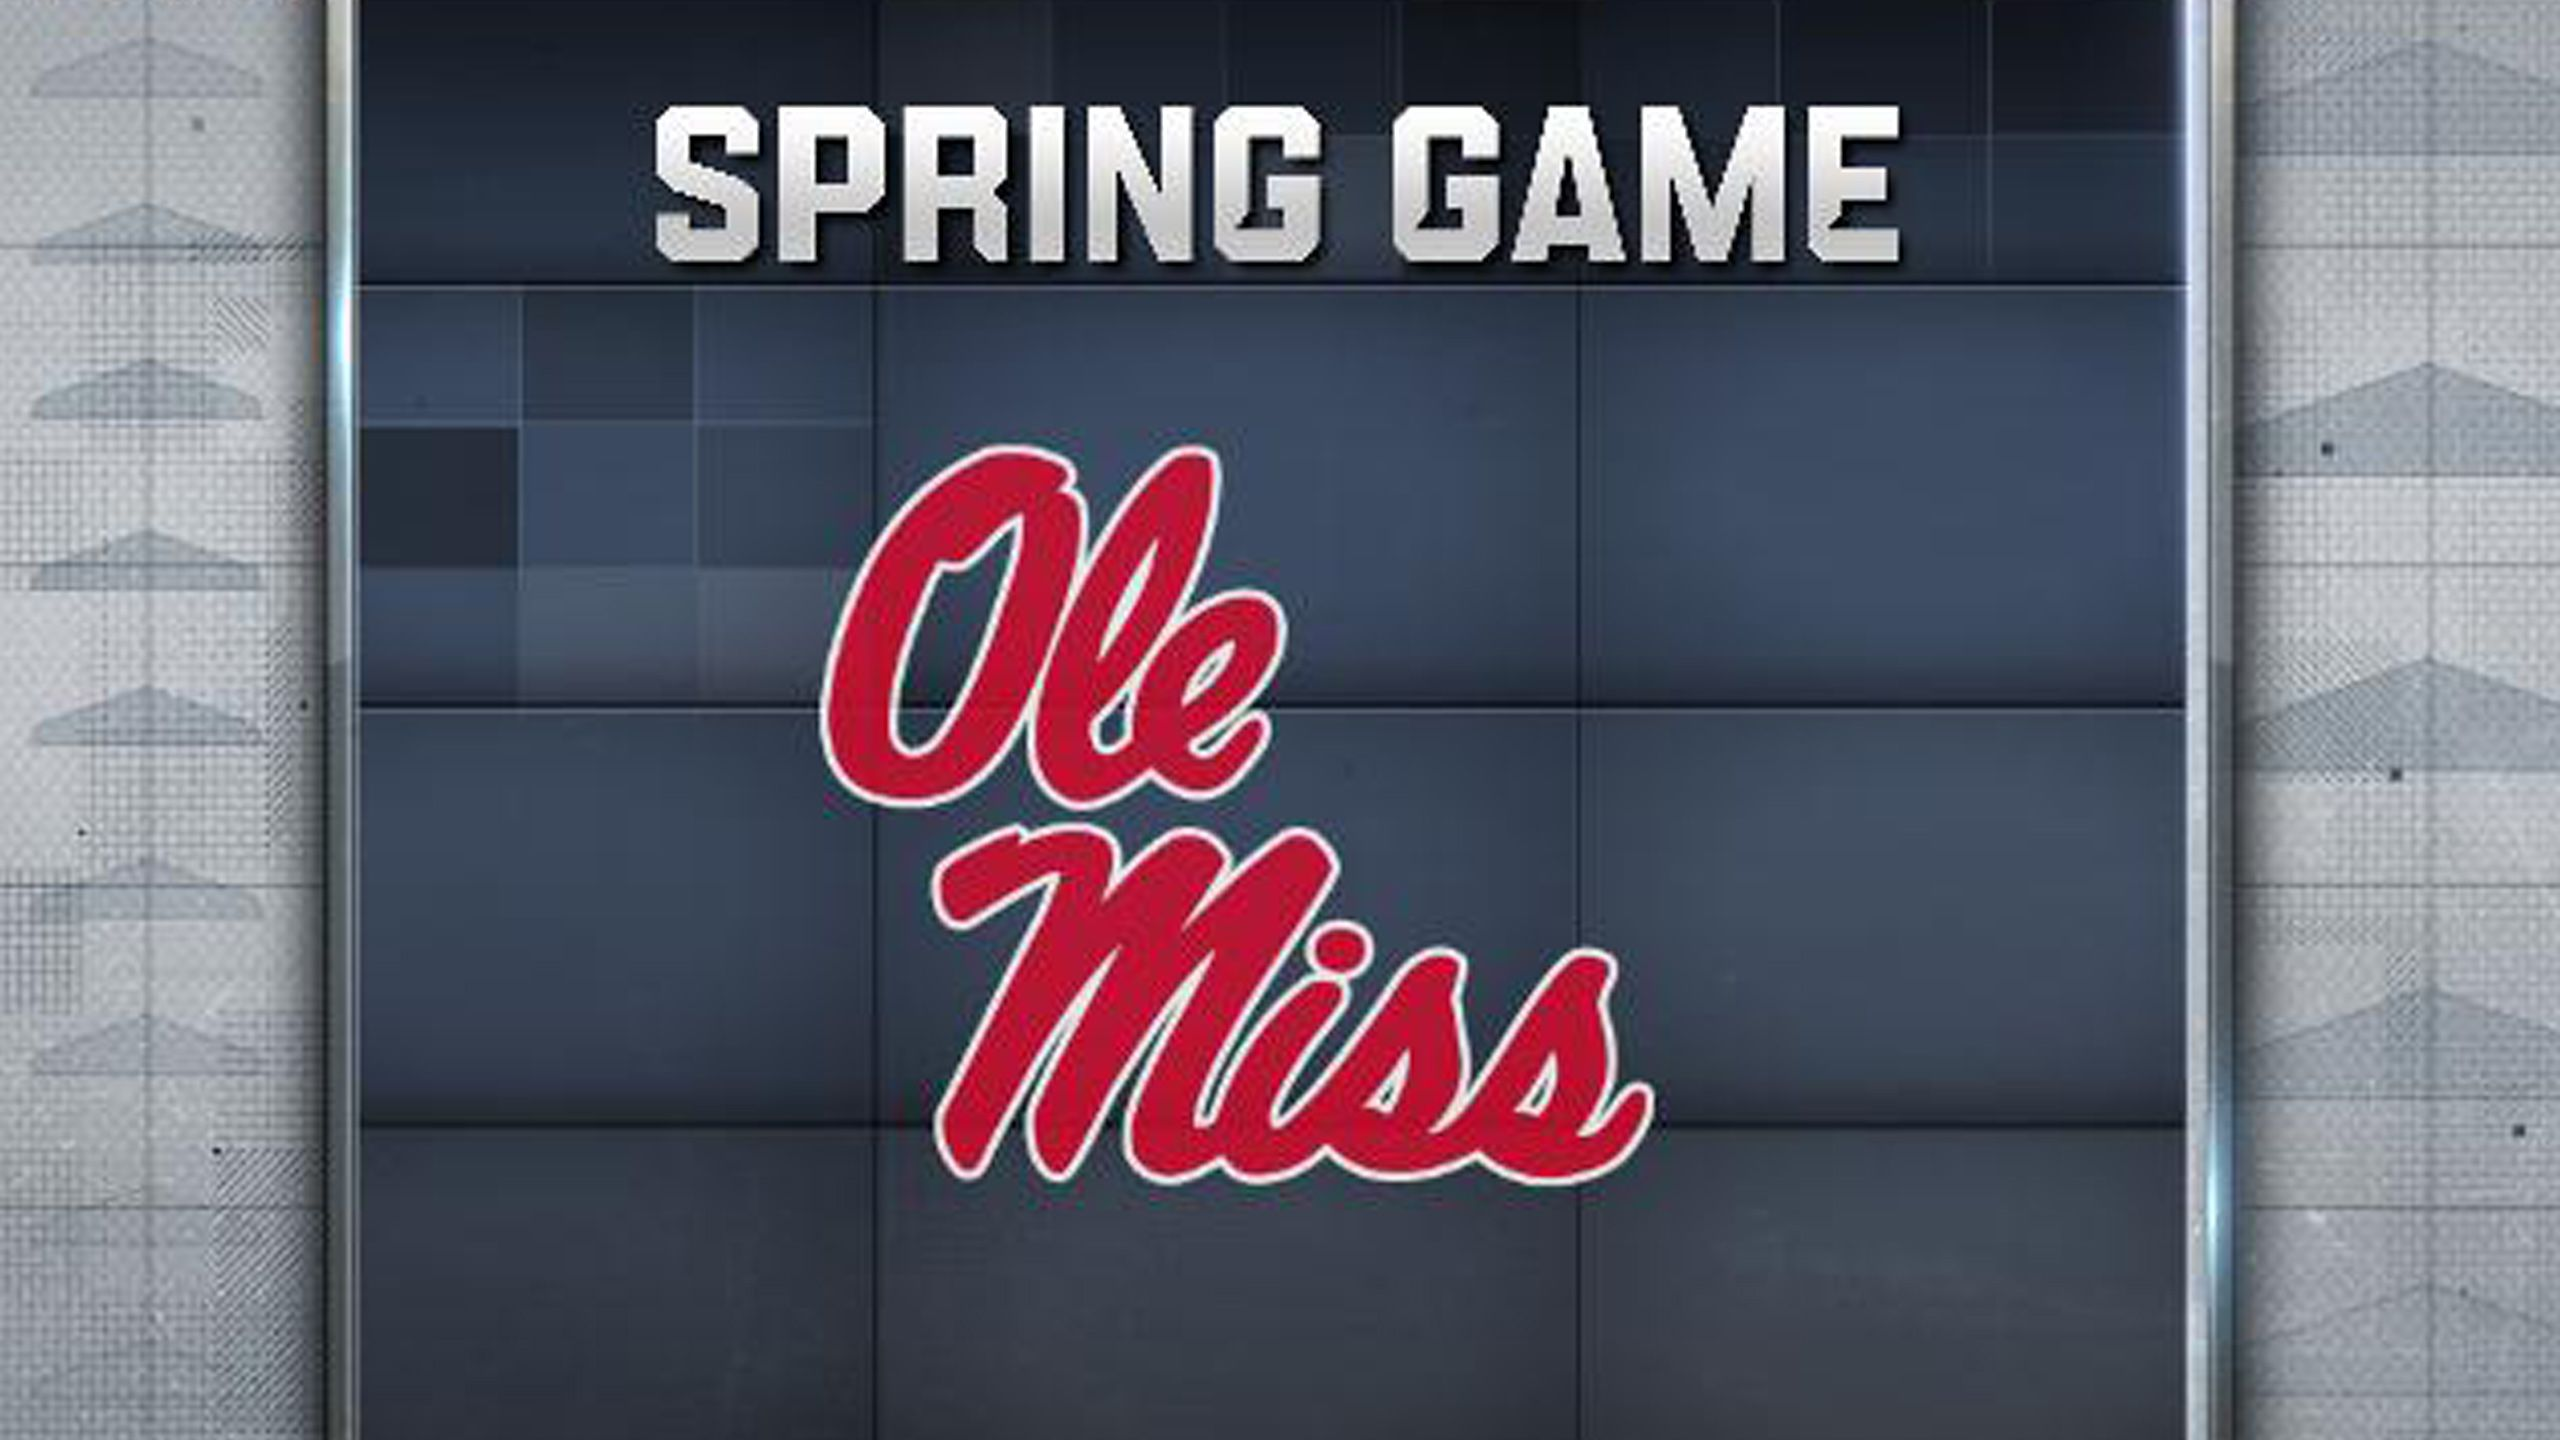 Ole Miss Spring Football Game